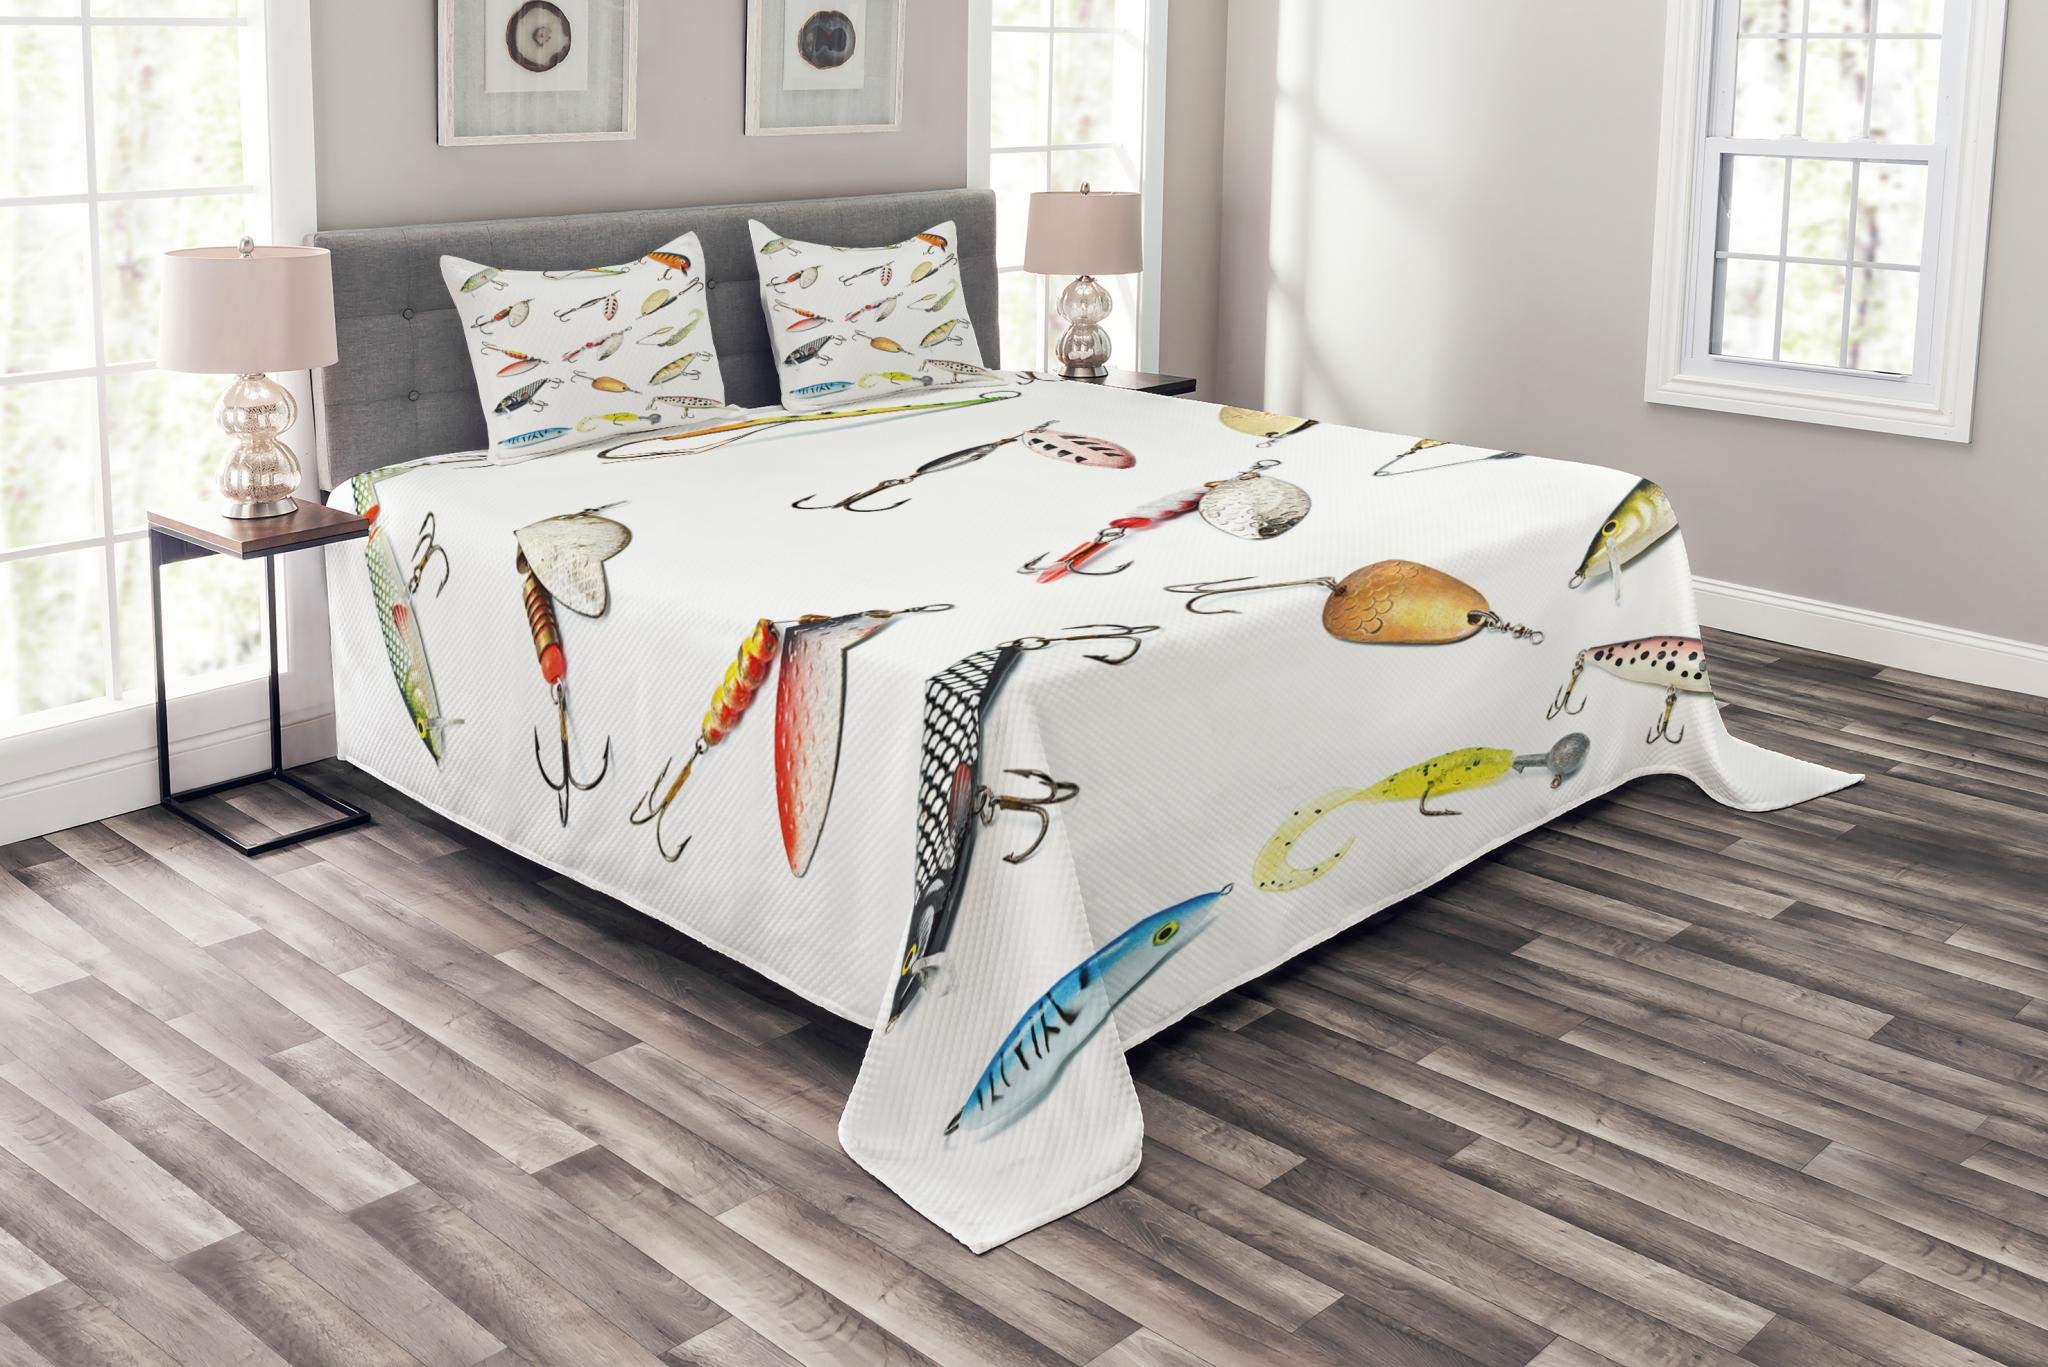 Lunarable Fishing Coverlet Set Queen Size, Cute Hook Set Tool Equipment Hand Gathering Sports Hobby Nautical Theme Artwork, Decorative Quilted 3 Piece Bedspread Set with 2 Pillow Shams, Multicolor